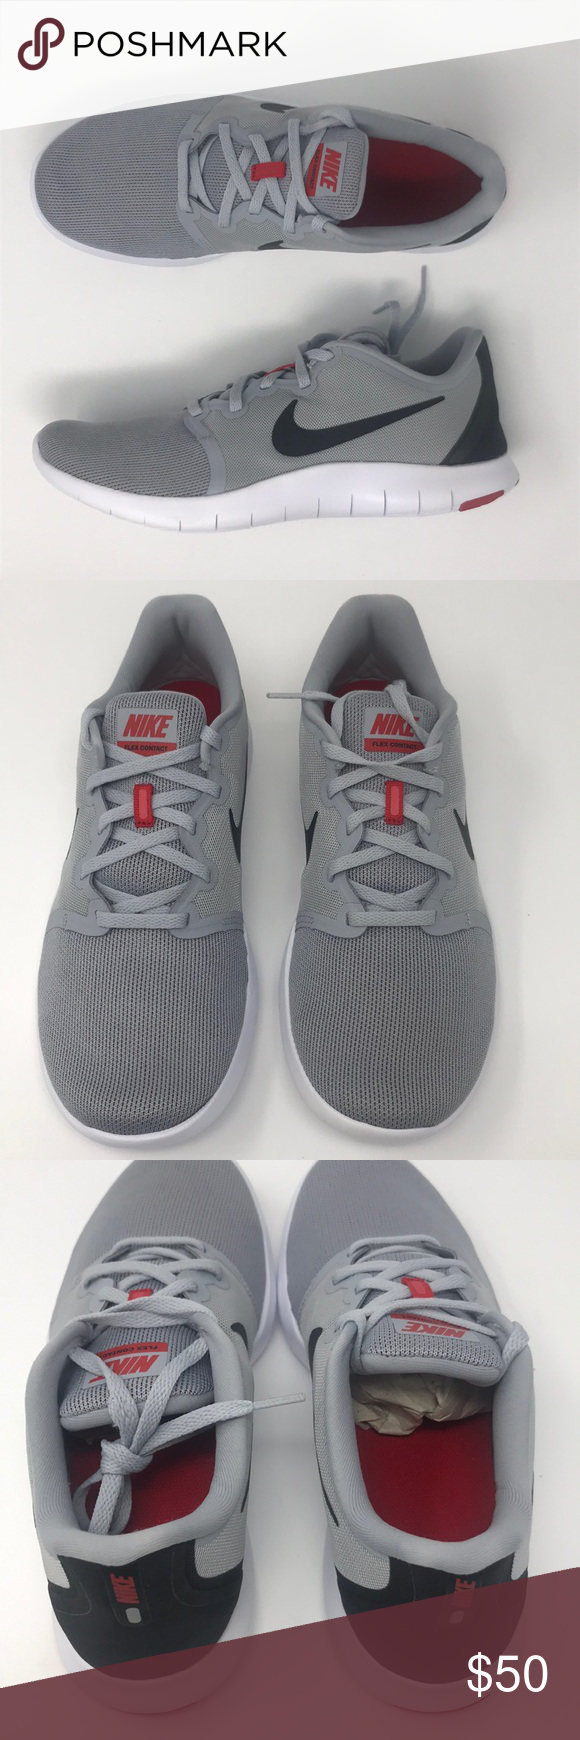 Nike flex contact 2 grey gray black red men s Brand new with box - lace has  a snag Nike Shoes Athletic Shoes 2b15417eb03